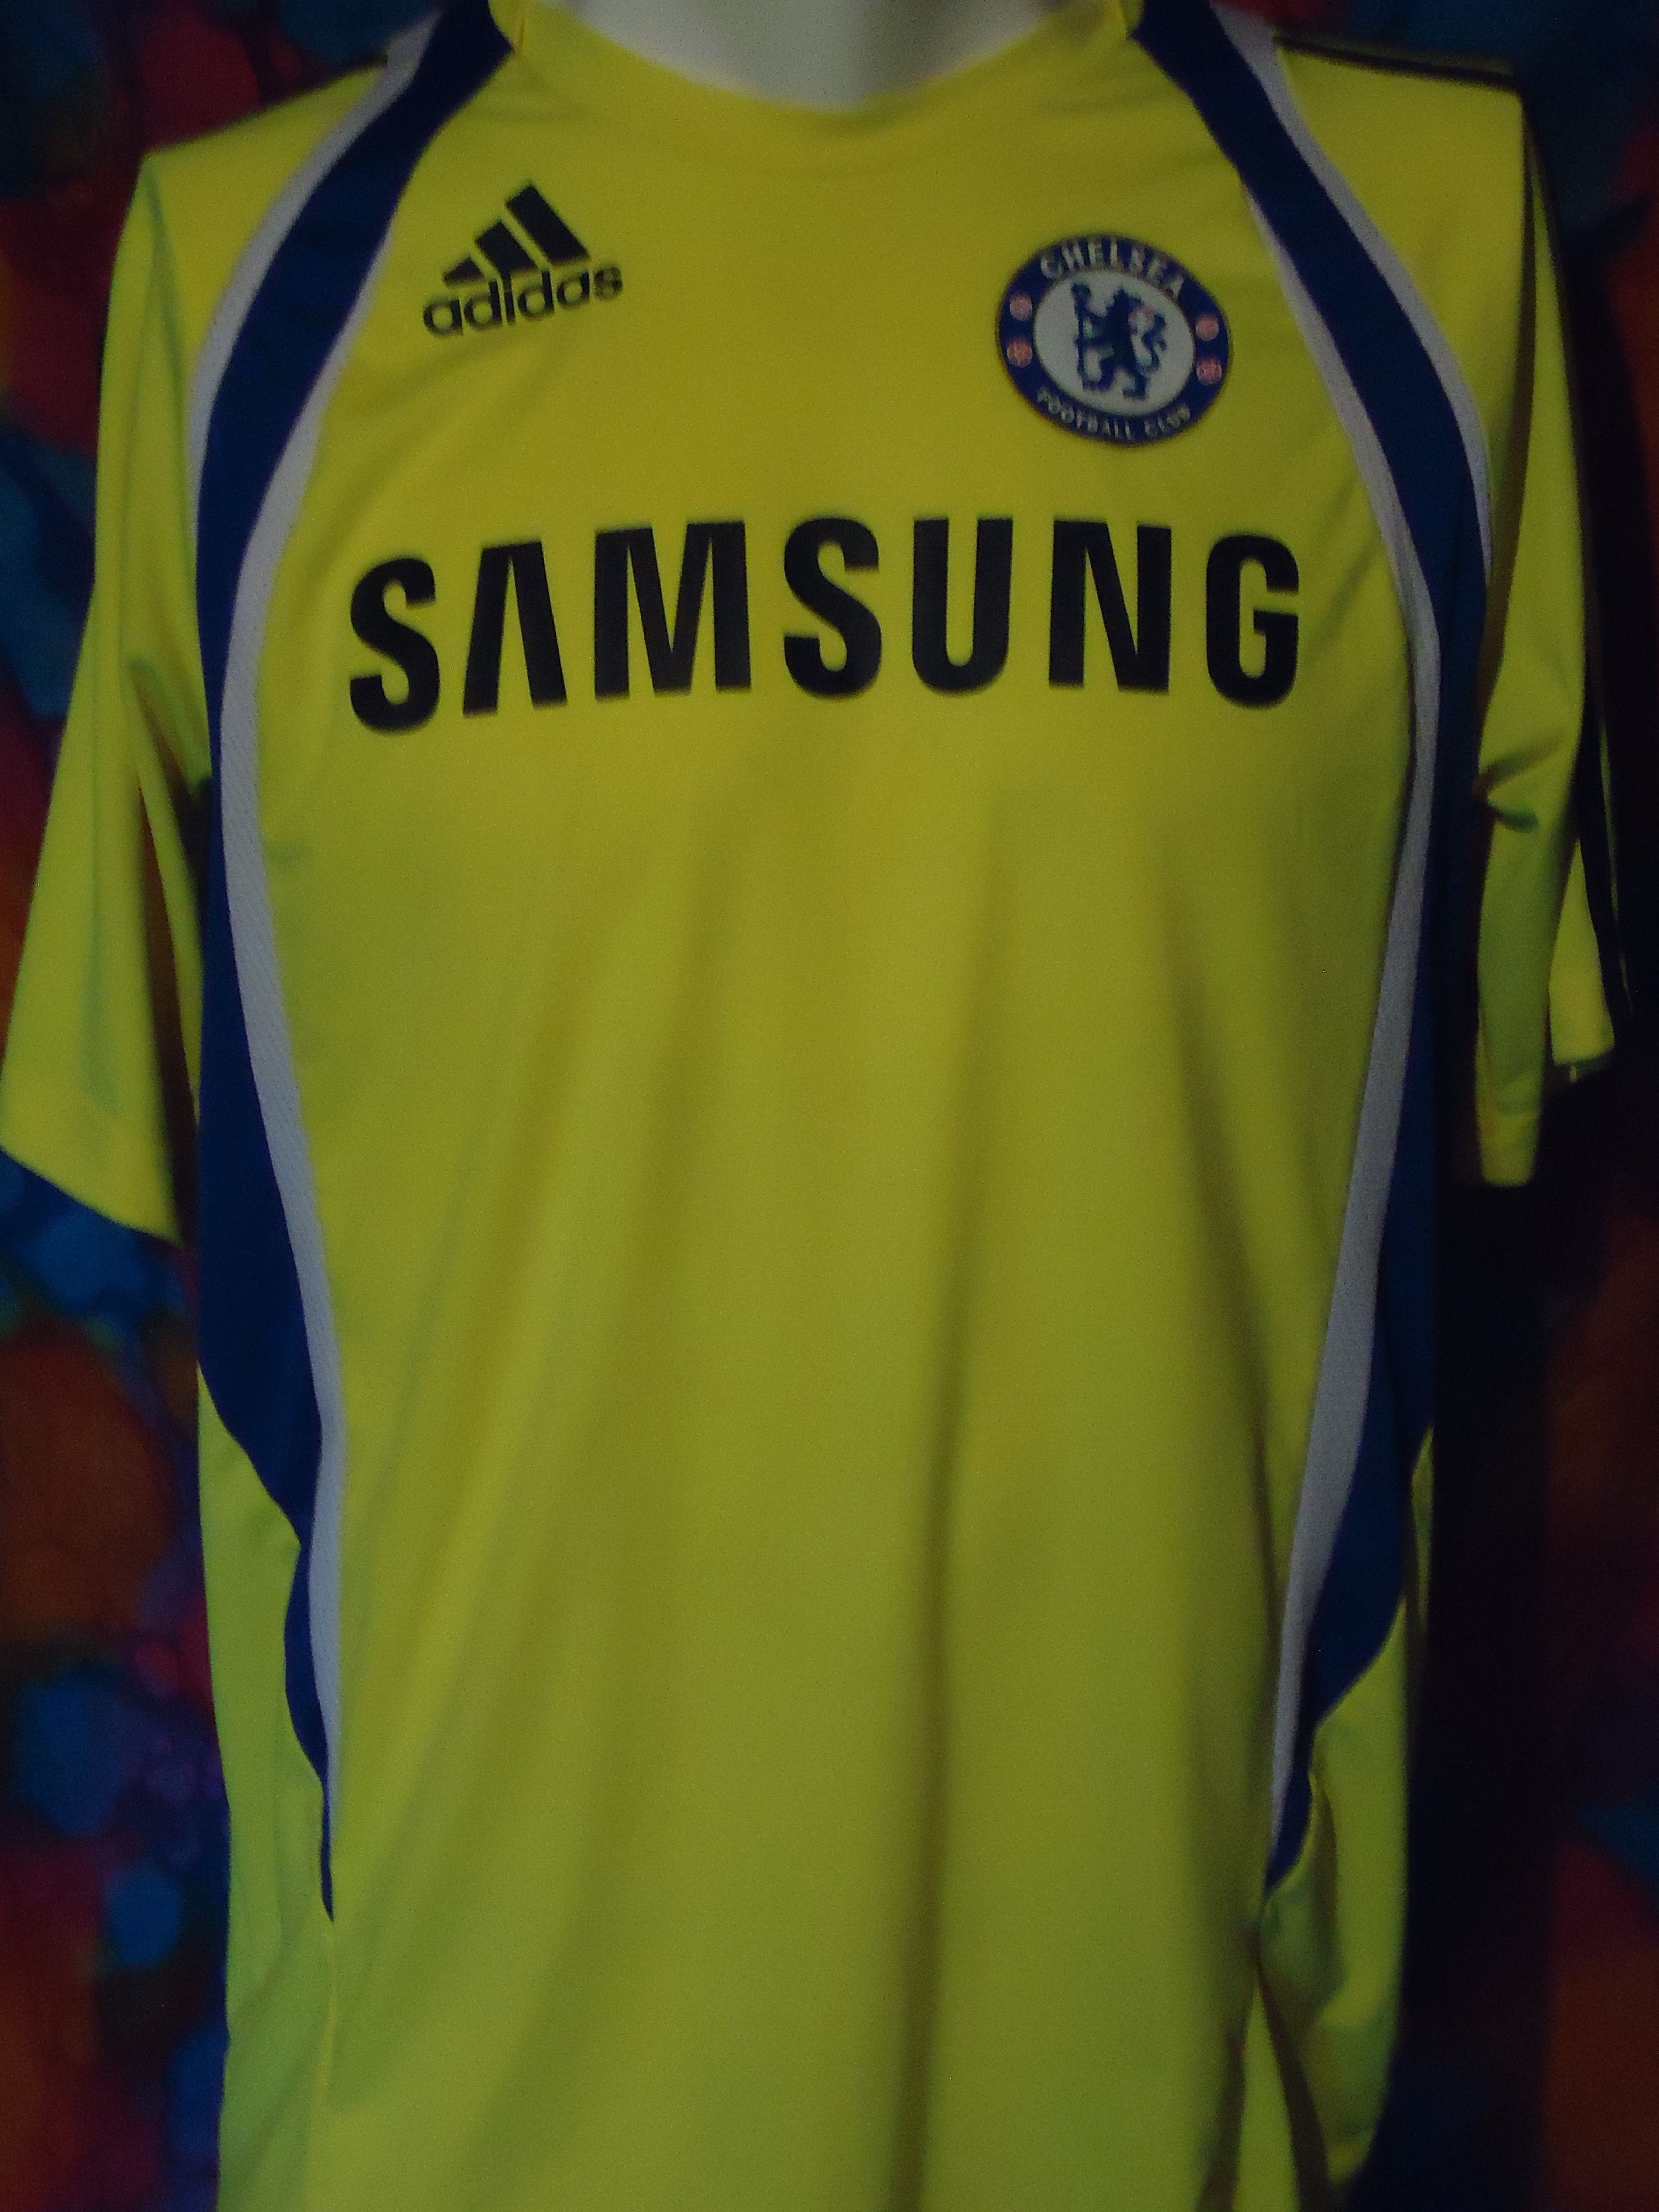 online store 23fd1 92bd1 Chelsea - Football Club - Soccer Jersey - Yellow - Adidas ...